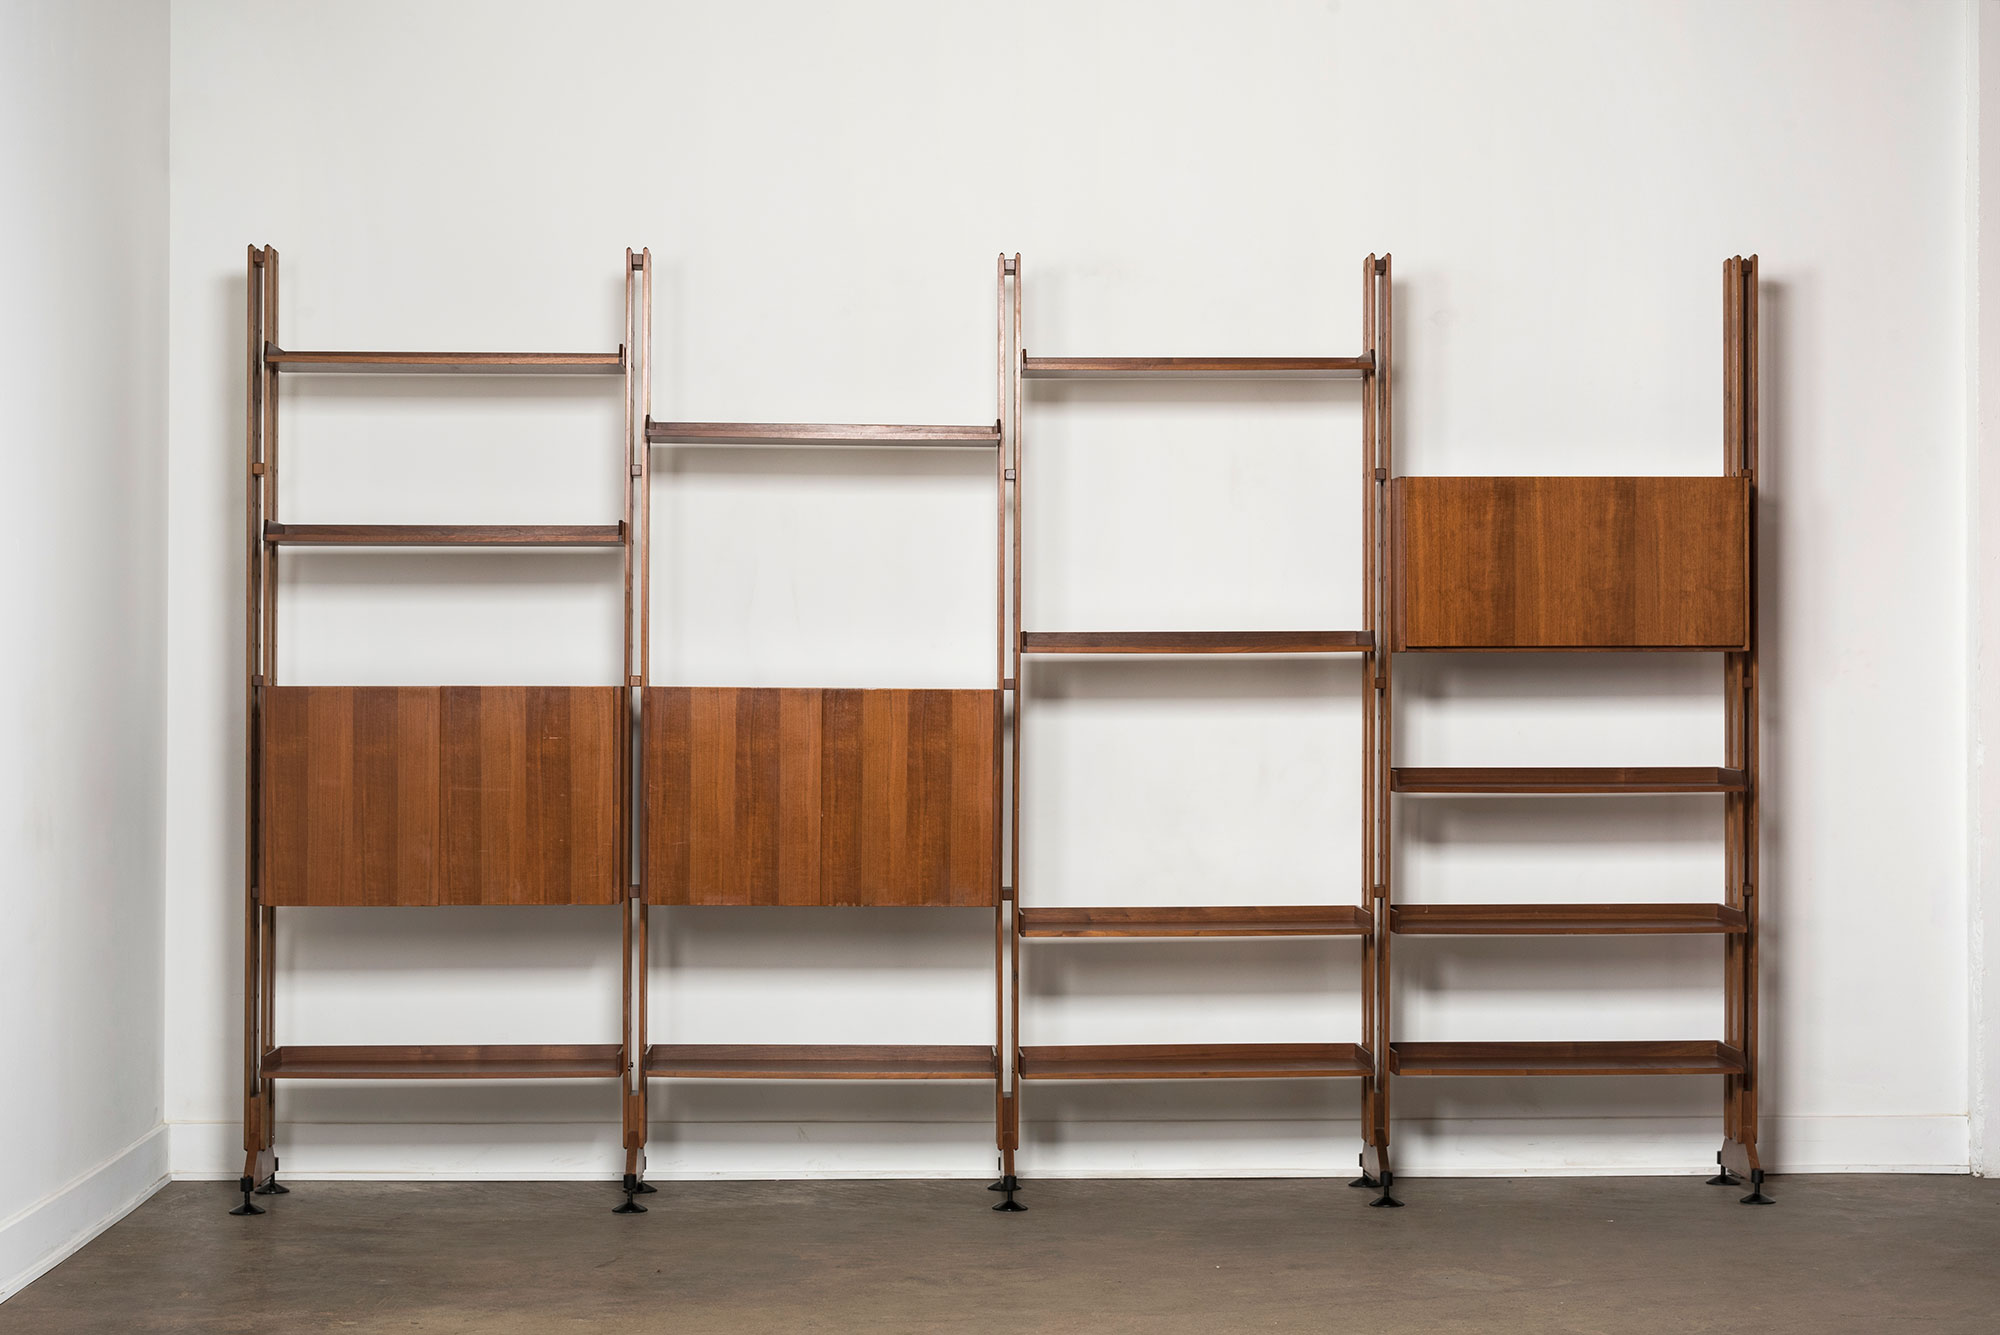 Franco Albini and Franca Helg |   Bookshelf and cabinet